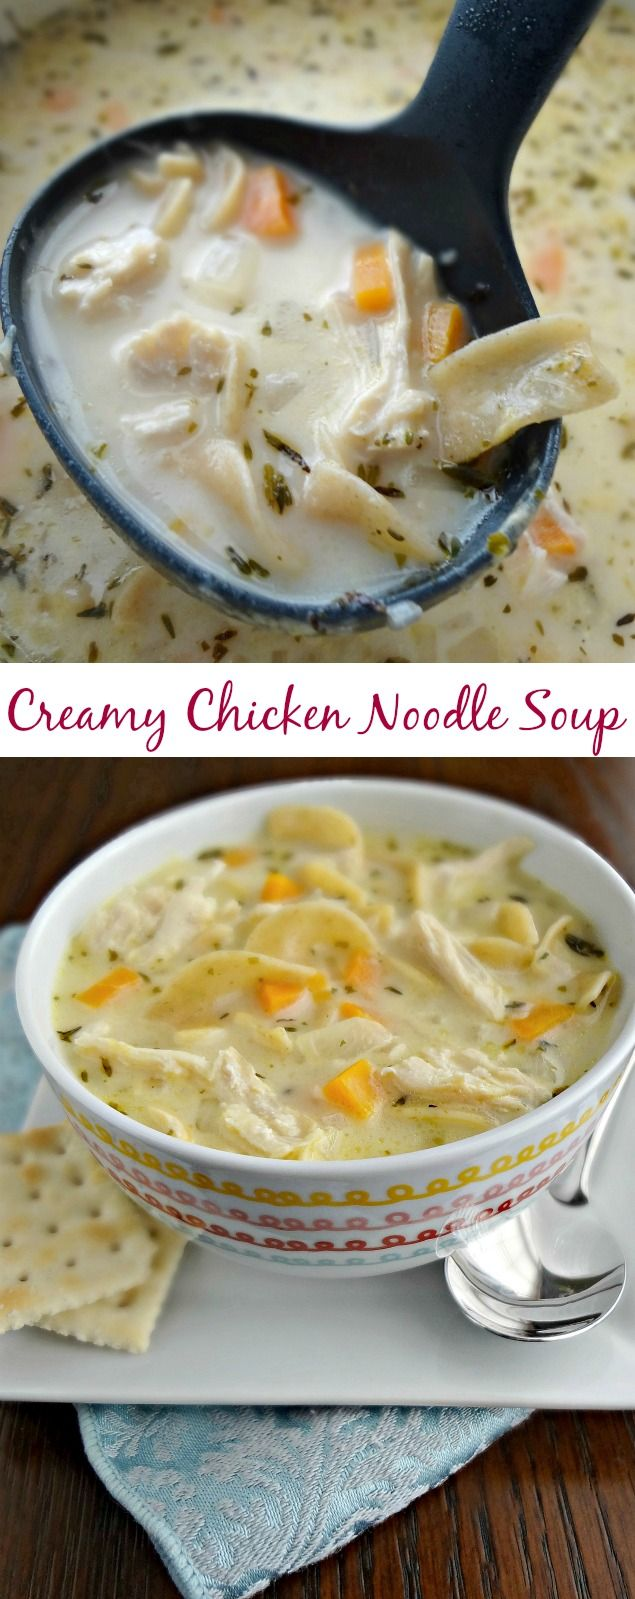 The Cooking Actress: Creamy Chicken Noodle Soup. A hearty, classic, comfort food recipe. Enjoy as an appetizer/starter, snack, or entree on a cold day!